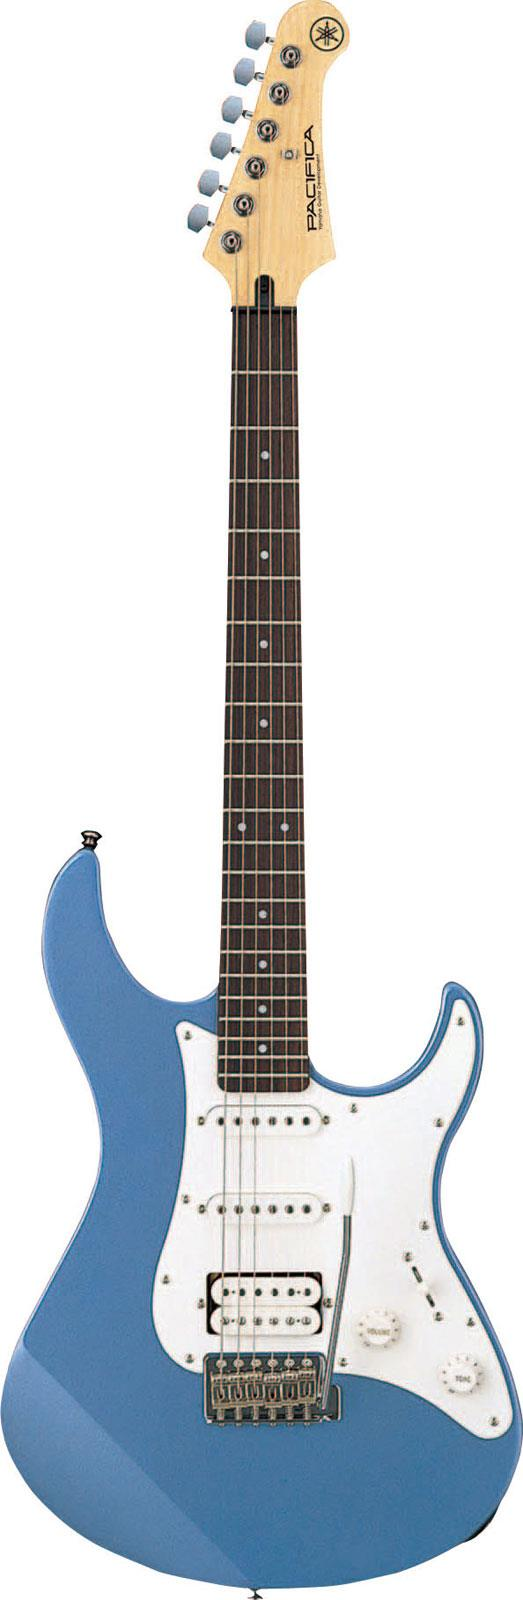 Yamaha pacifica112j lake placid blue keymusic for Yamaha pacifica 112 replacement parts